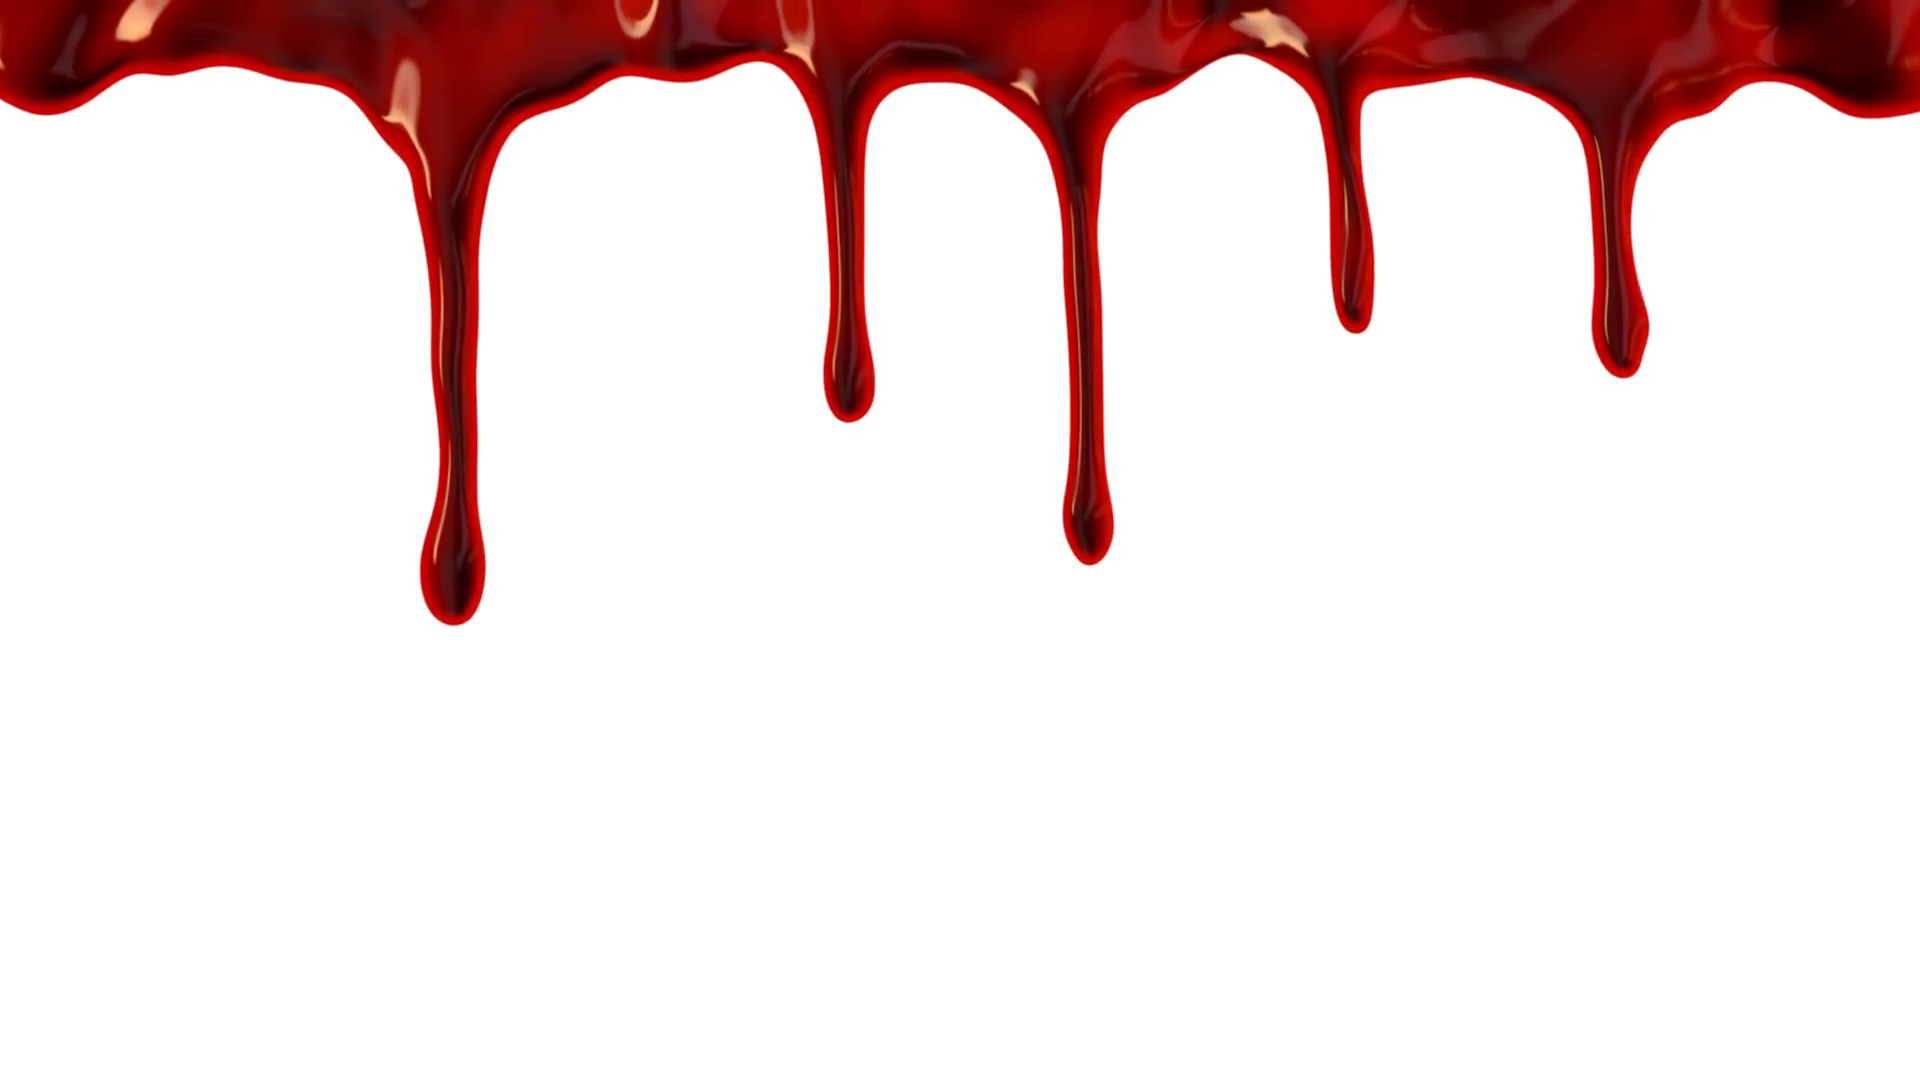 blood-dripping-down-over-white-background_vj5idj5yl__F0000